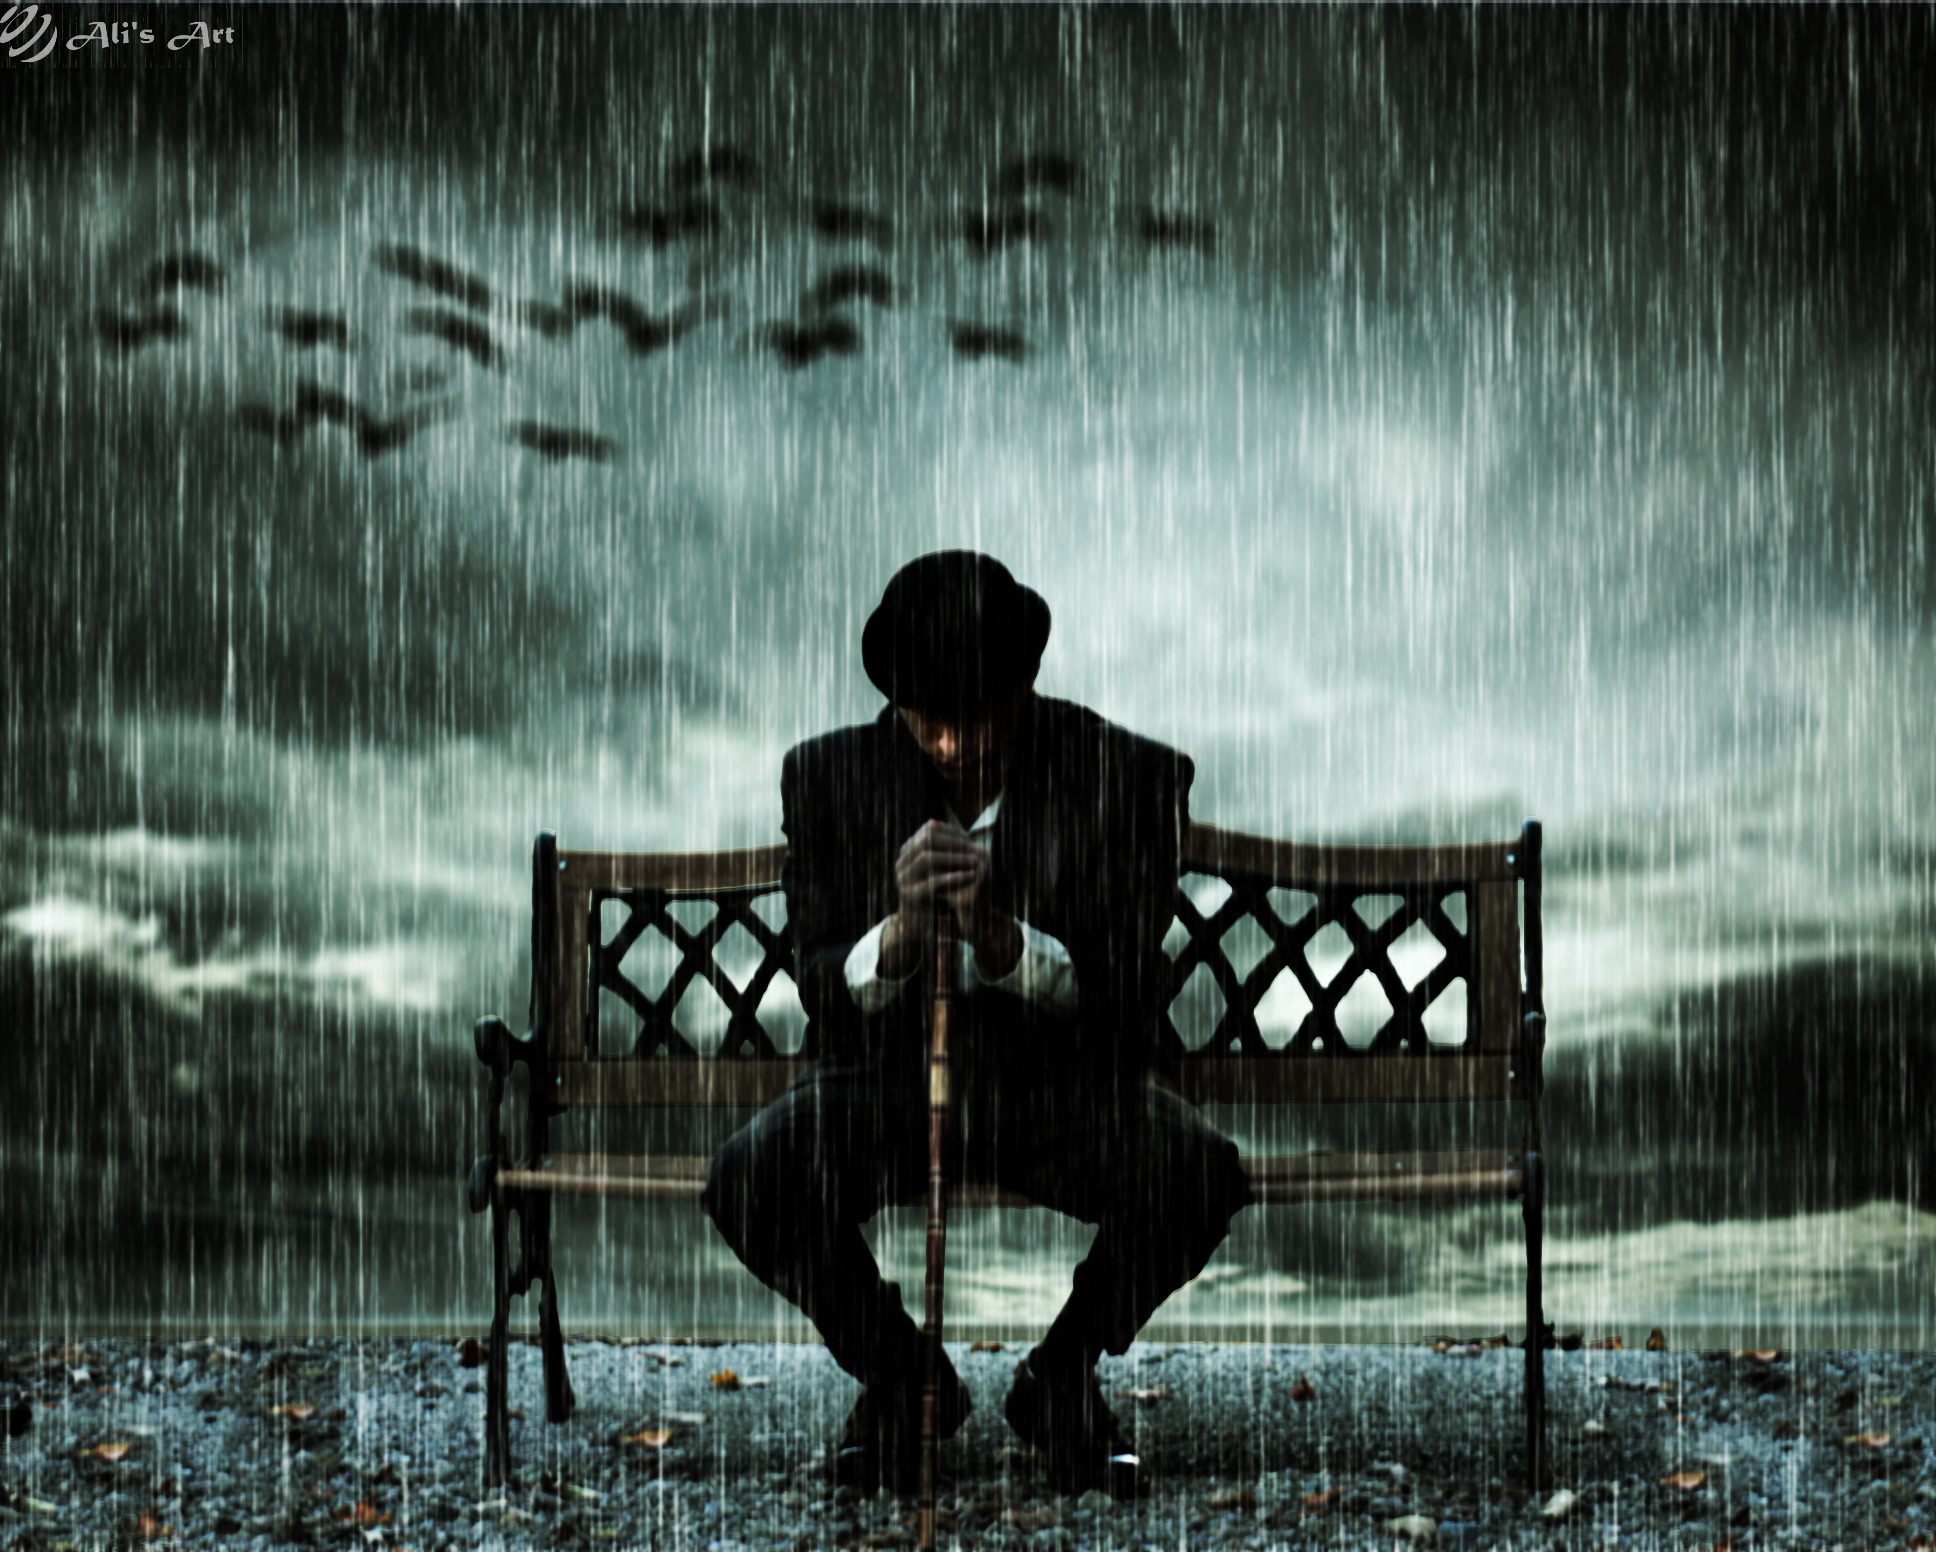 Waiting for Someone by jhonny53 on DeviantArt